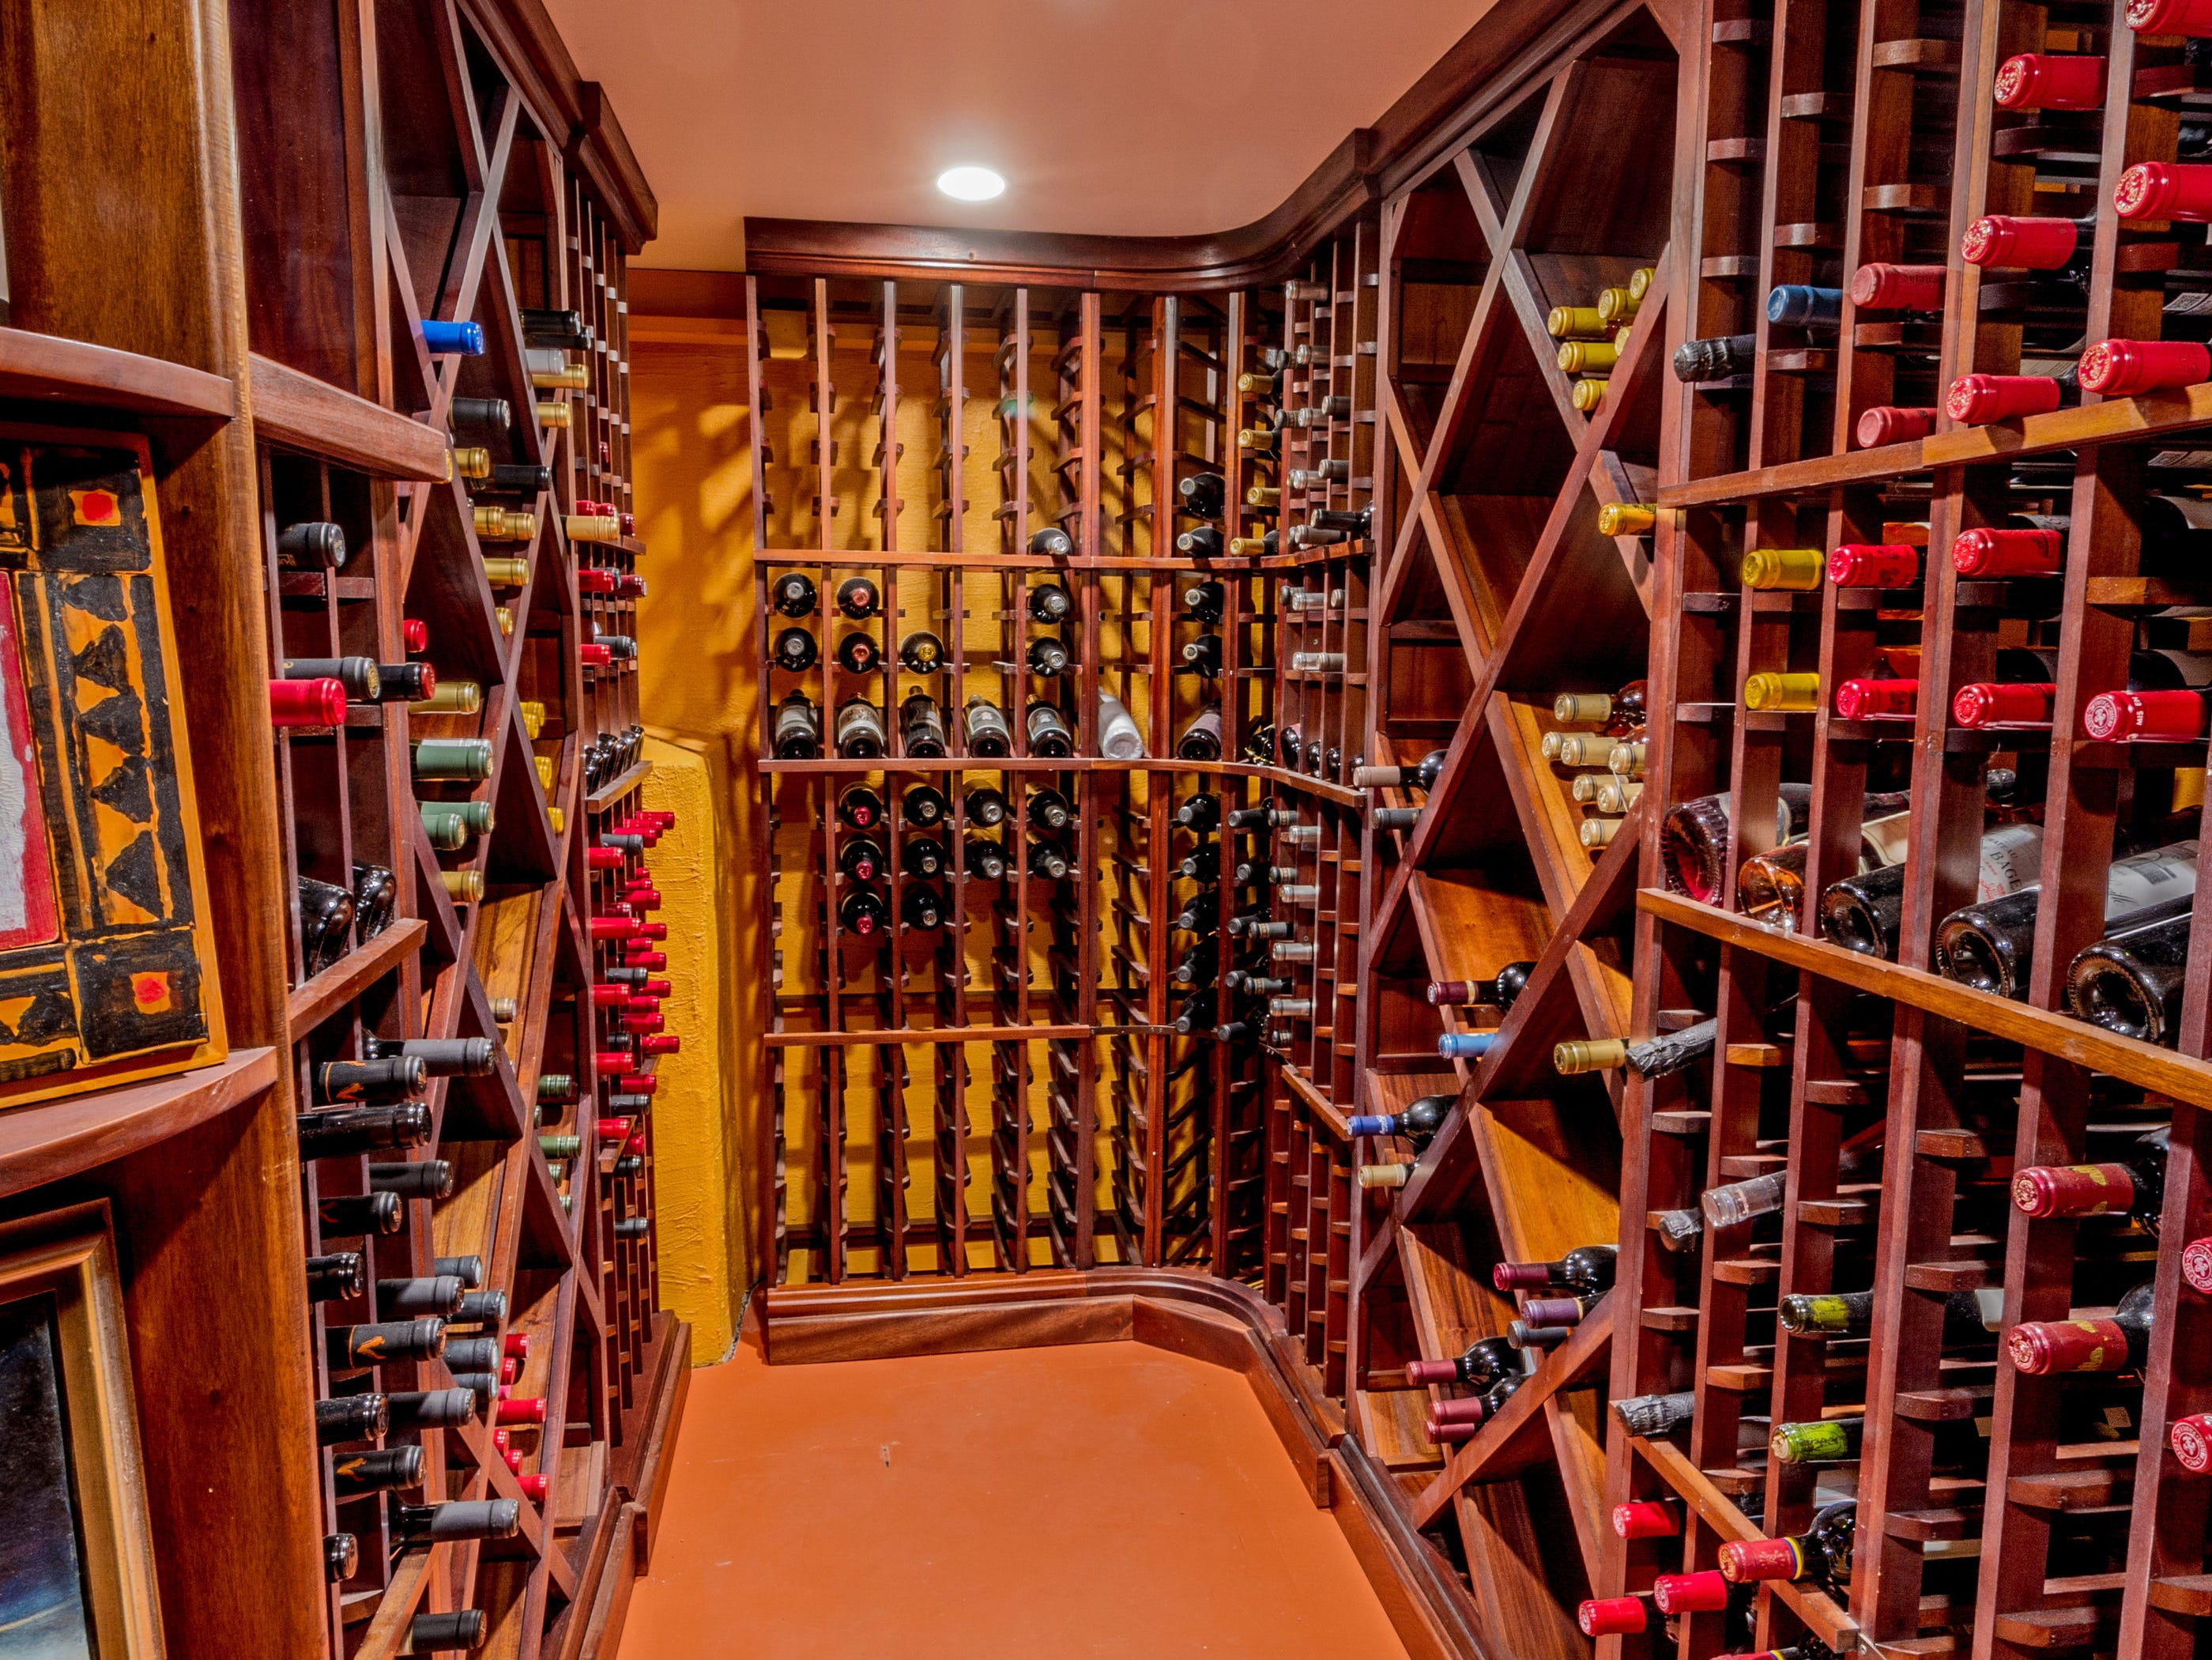 The house at 1100 N. Rodney St. in Cool Spring has its own wine cellar.